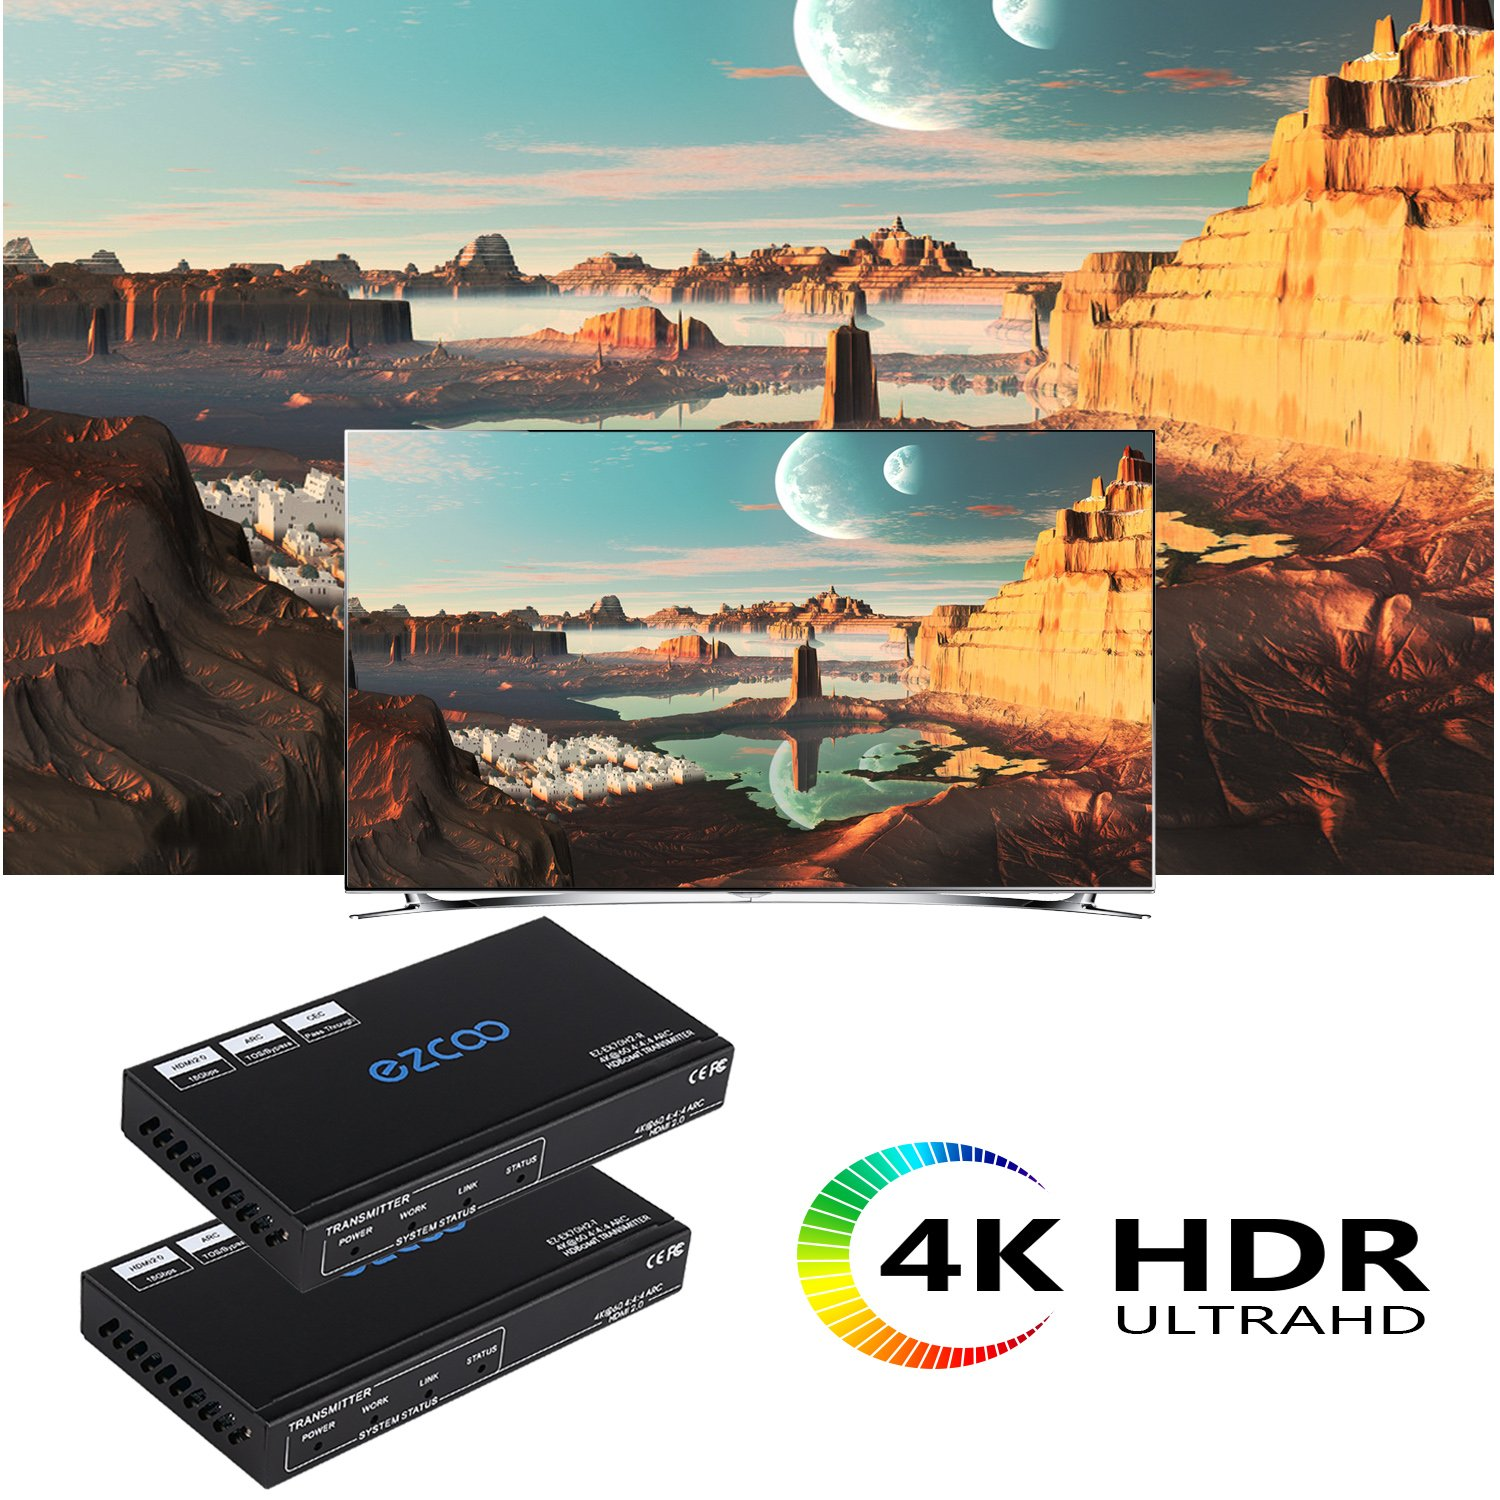 EZCOO 4K HDMI 2.0 Extender ARC HDR Scaler,HDBaseT Extender,Uncompressed 4K 60Hz 4:4:4 18Gbps HDCP 2.2 SPDIF, 4K/ 1080P Scaler Out, 230ft 1080P, 130ft 4K via Cat5e/6a, Bi-directional PoE+IR, CEC, DTS:X by EZCOO (Image #2)